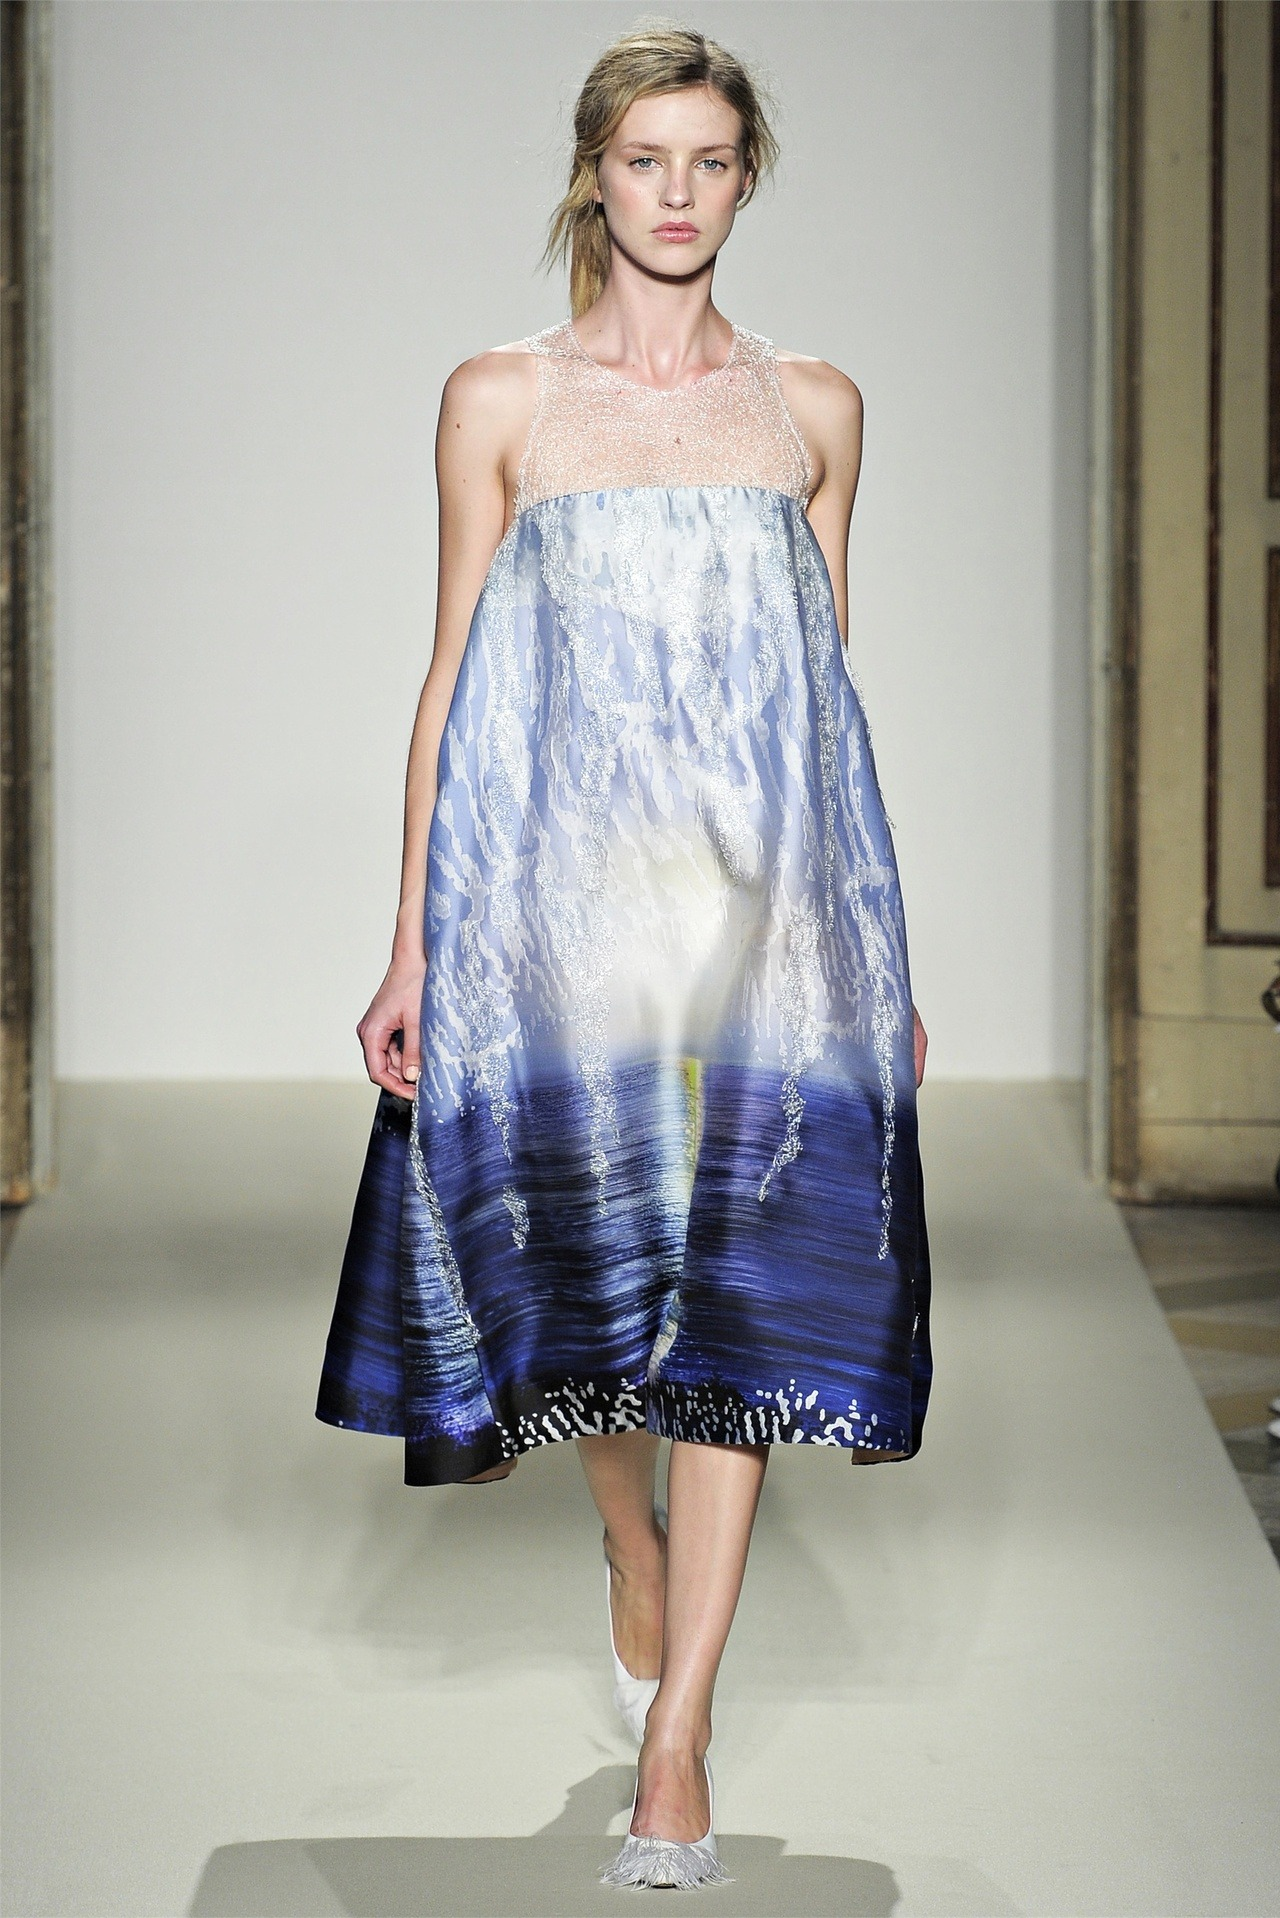 Julia Frauche at Gabriele Colangelo, spring 2012